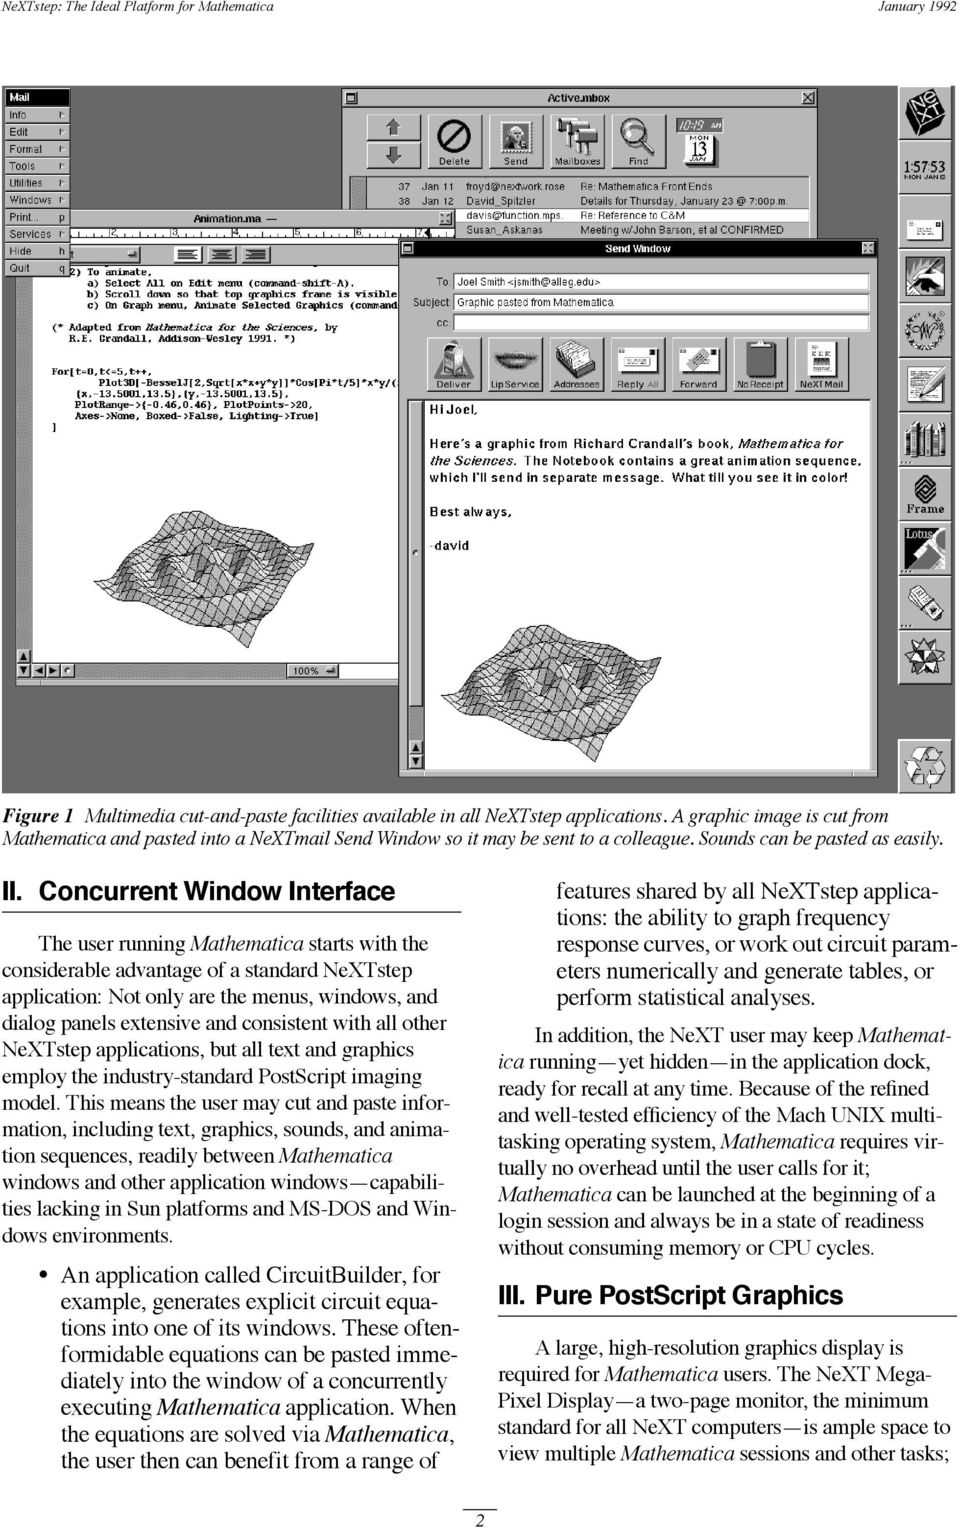 Concurrent Window Interface The user running Mathematica starts with the considerable advantage of a standard NeXTstep application: Not only are the menus, windows, and dialog panels extensive and